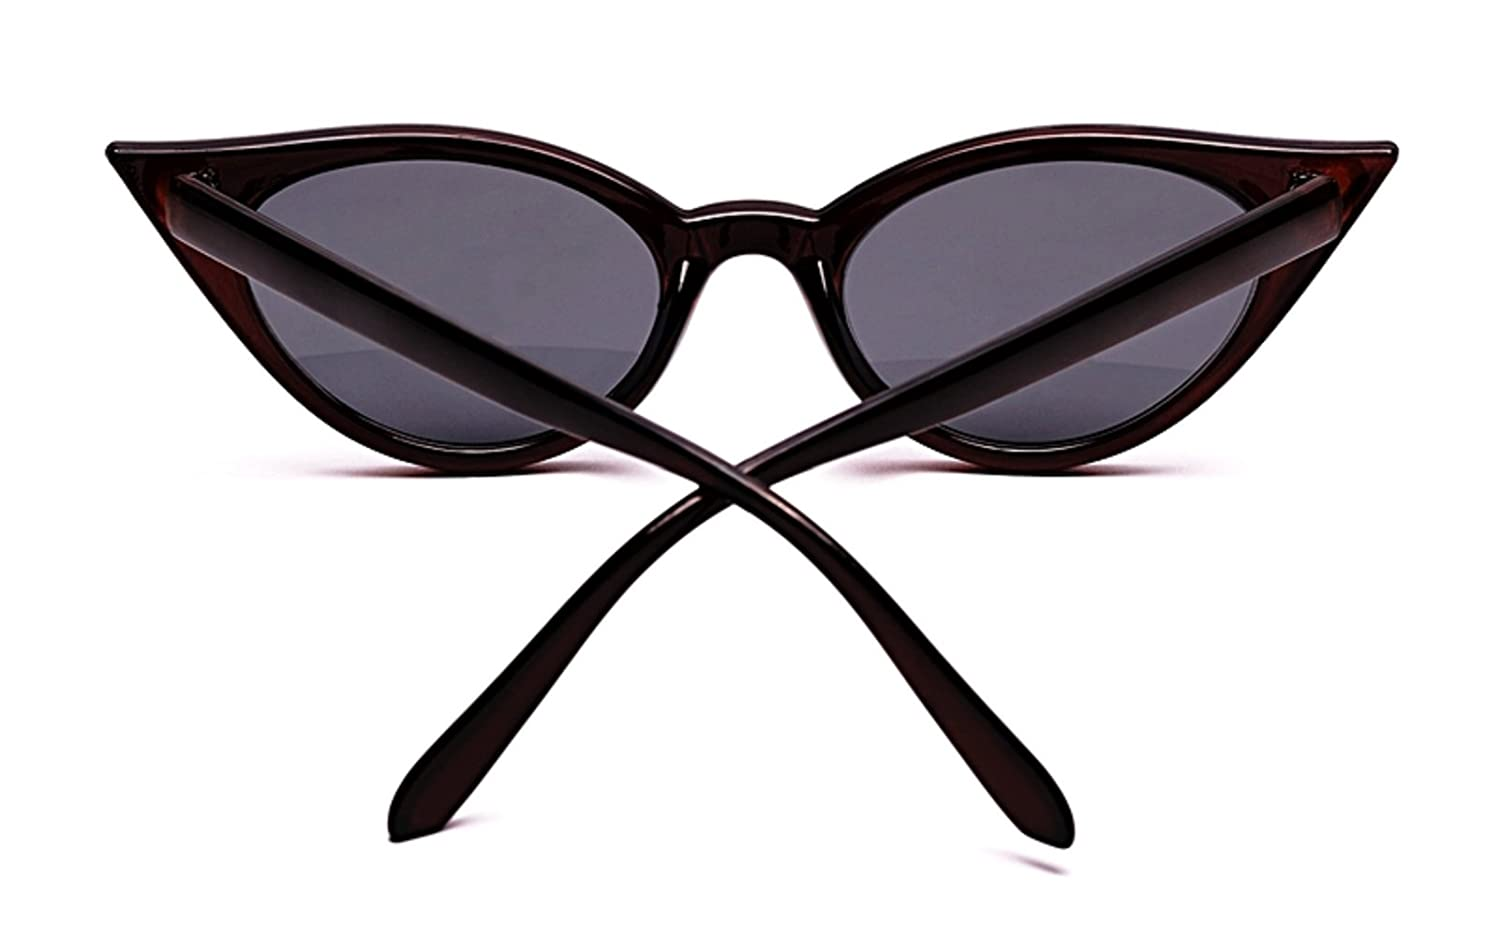 SG58 Retro 1950s 1960s Cat Eye Metal Hinged Vintage Fashion Stylish Sunglasses 100/% UV Protection